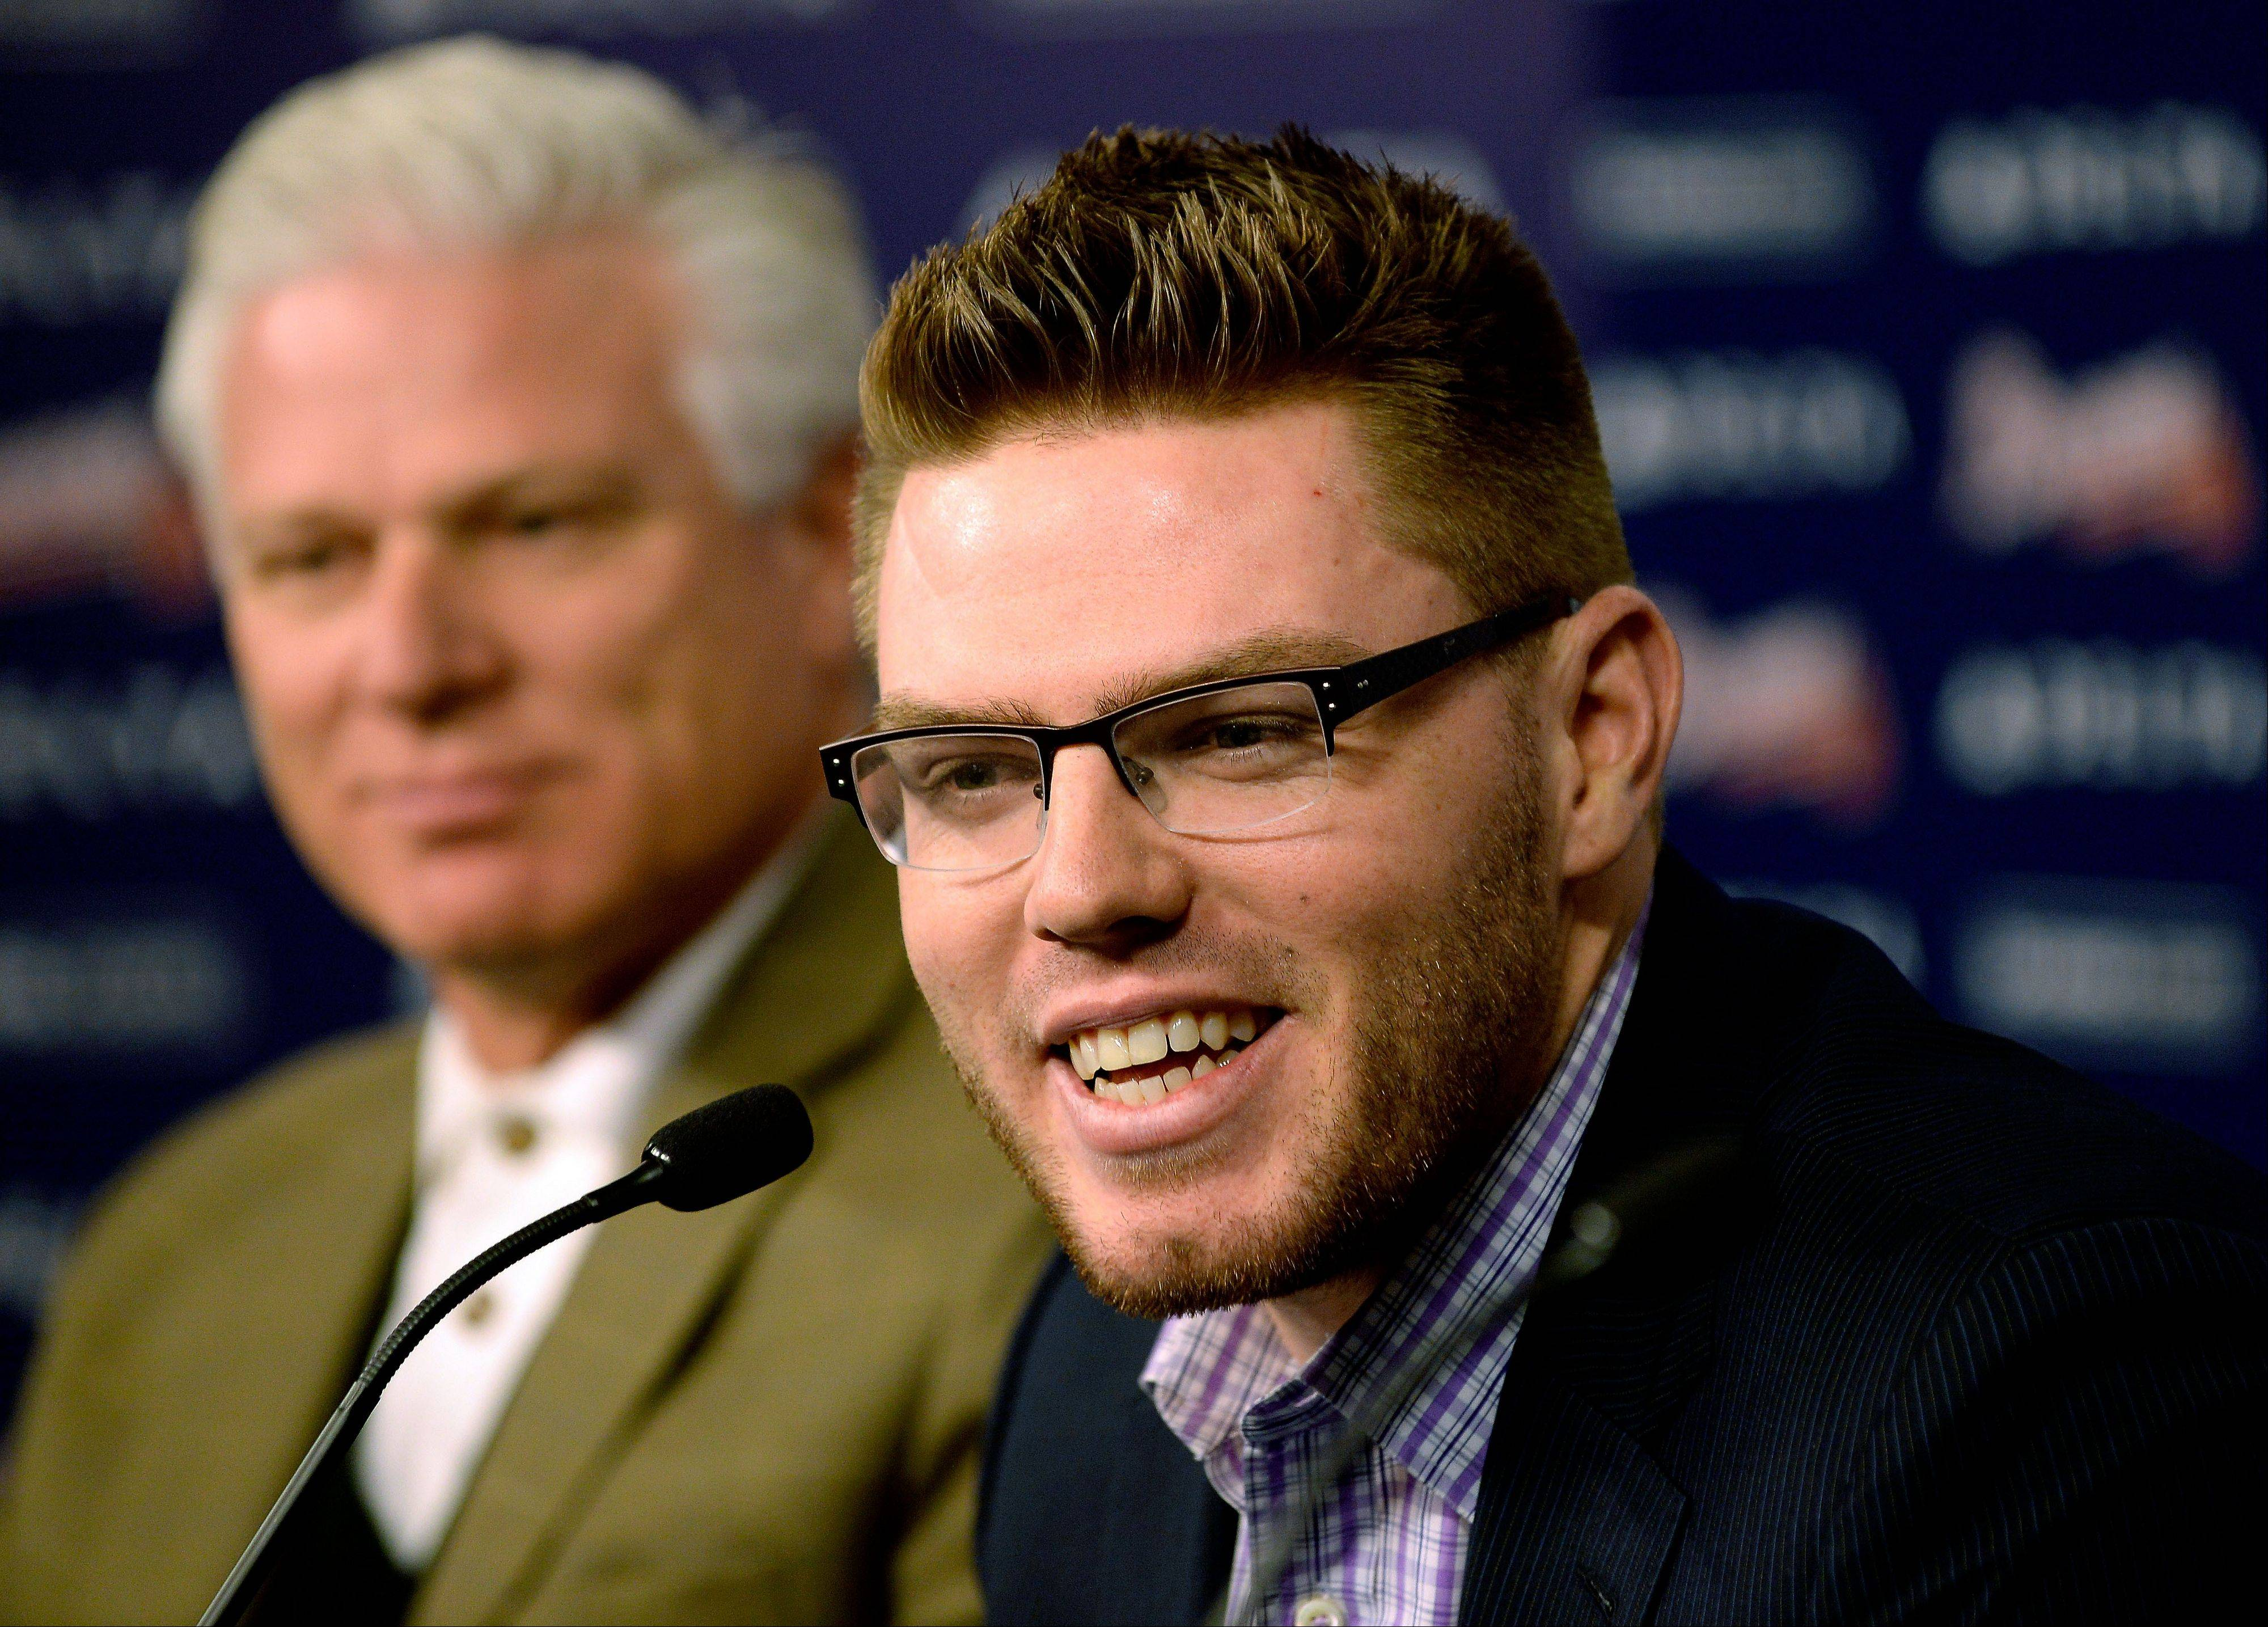 Atlanta Braves first baseman Freddie Freeman sits next to manager Frank Wren while discussing his new deal with the baseball team, Wednesday, Feb. 5, 2014, in Atlanta. Freeman said Wednesday his $135 million, eight-year deal shows he should simply continue on his current path to becoming one of the best first basemen. (AP Photo/Atlanta Journal-Constitution, David Tulis) GWINNETT OUT MARIETTA OUT LOCAL TV OUT (WXIA, WGCL, FOX 5)